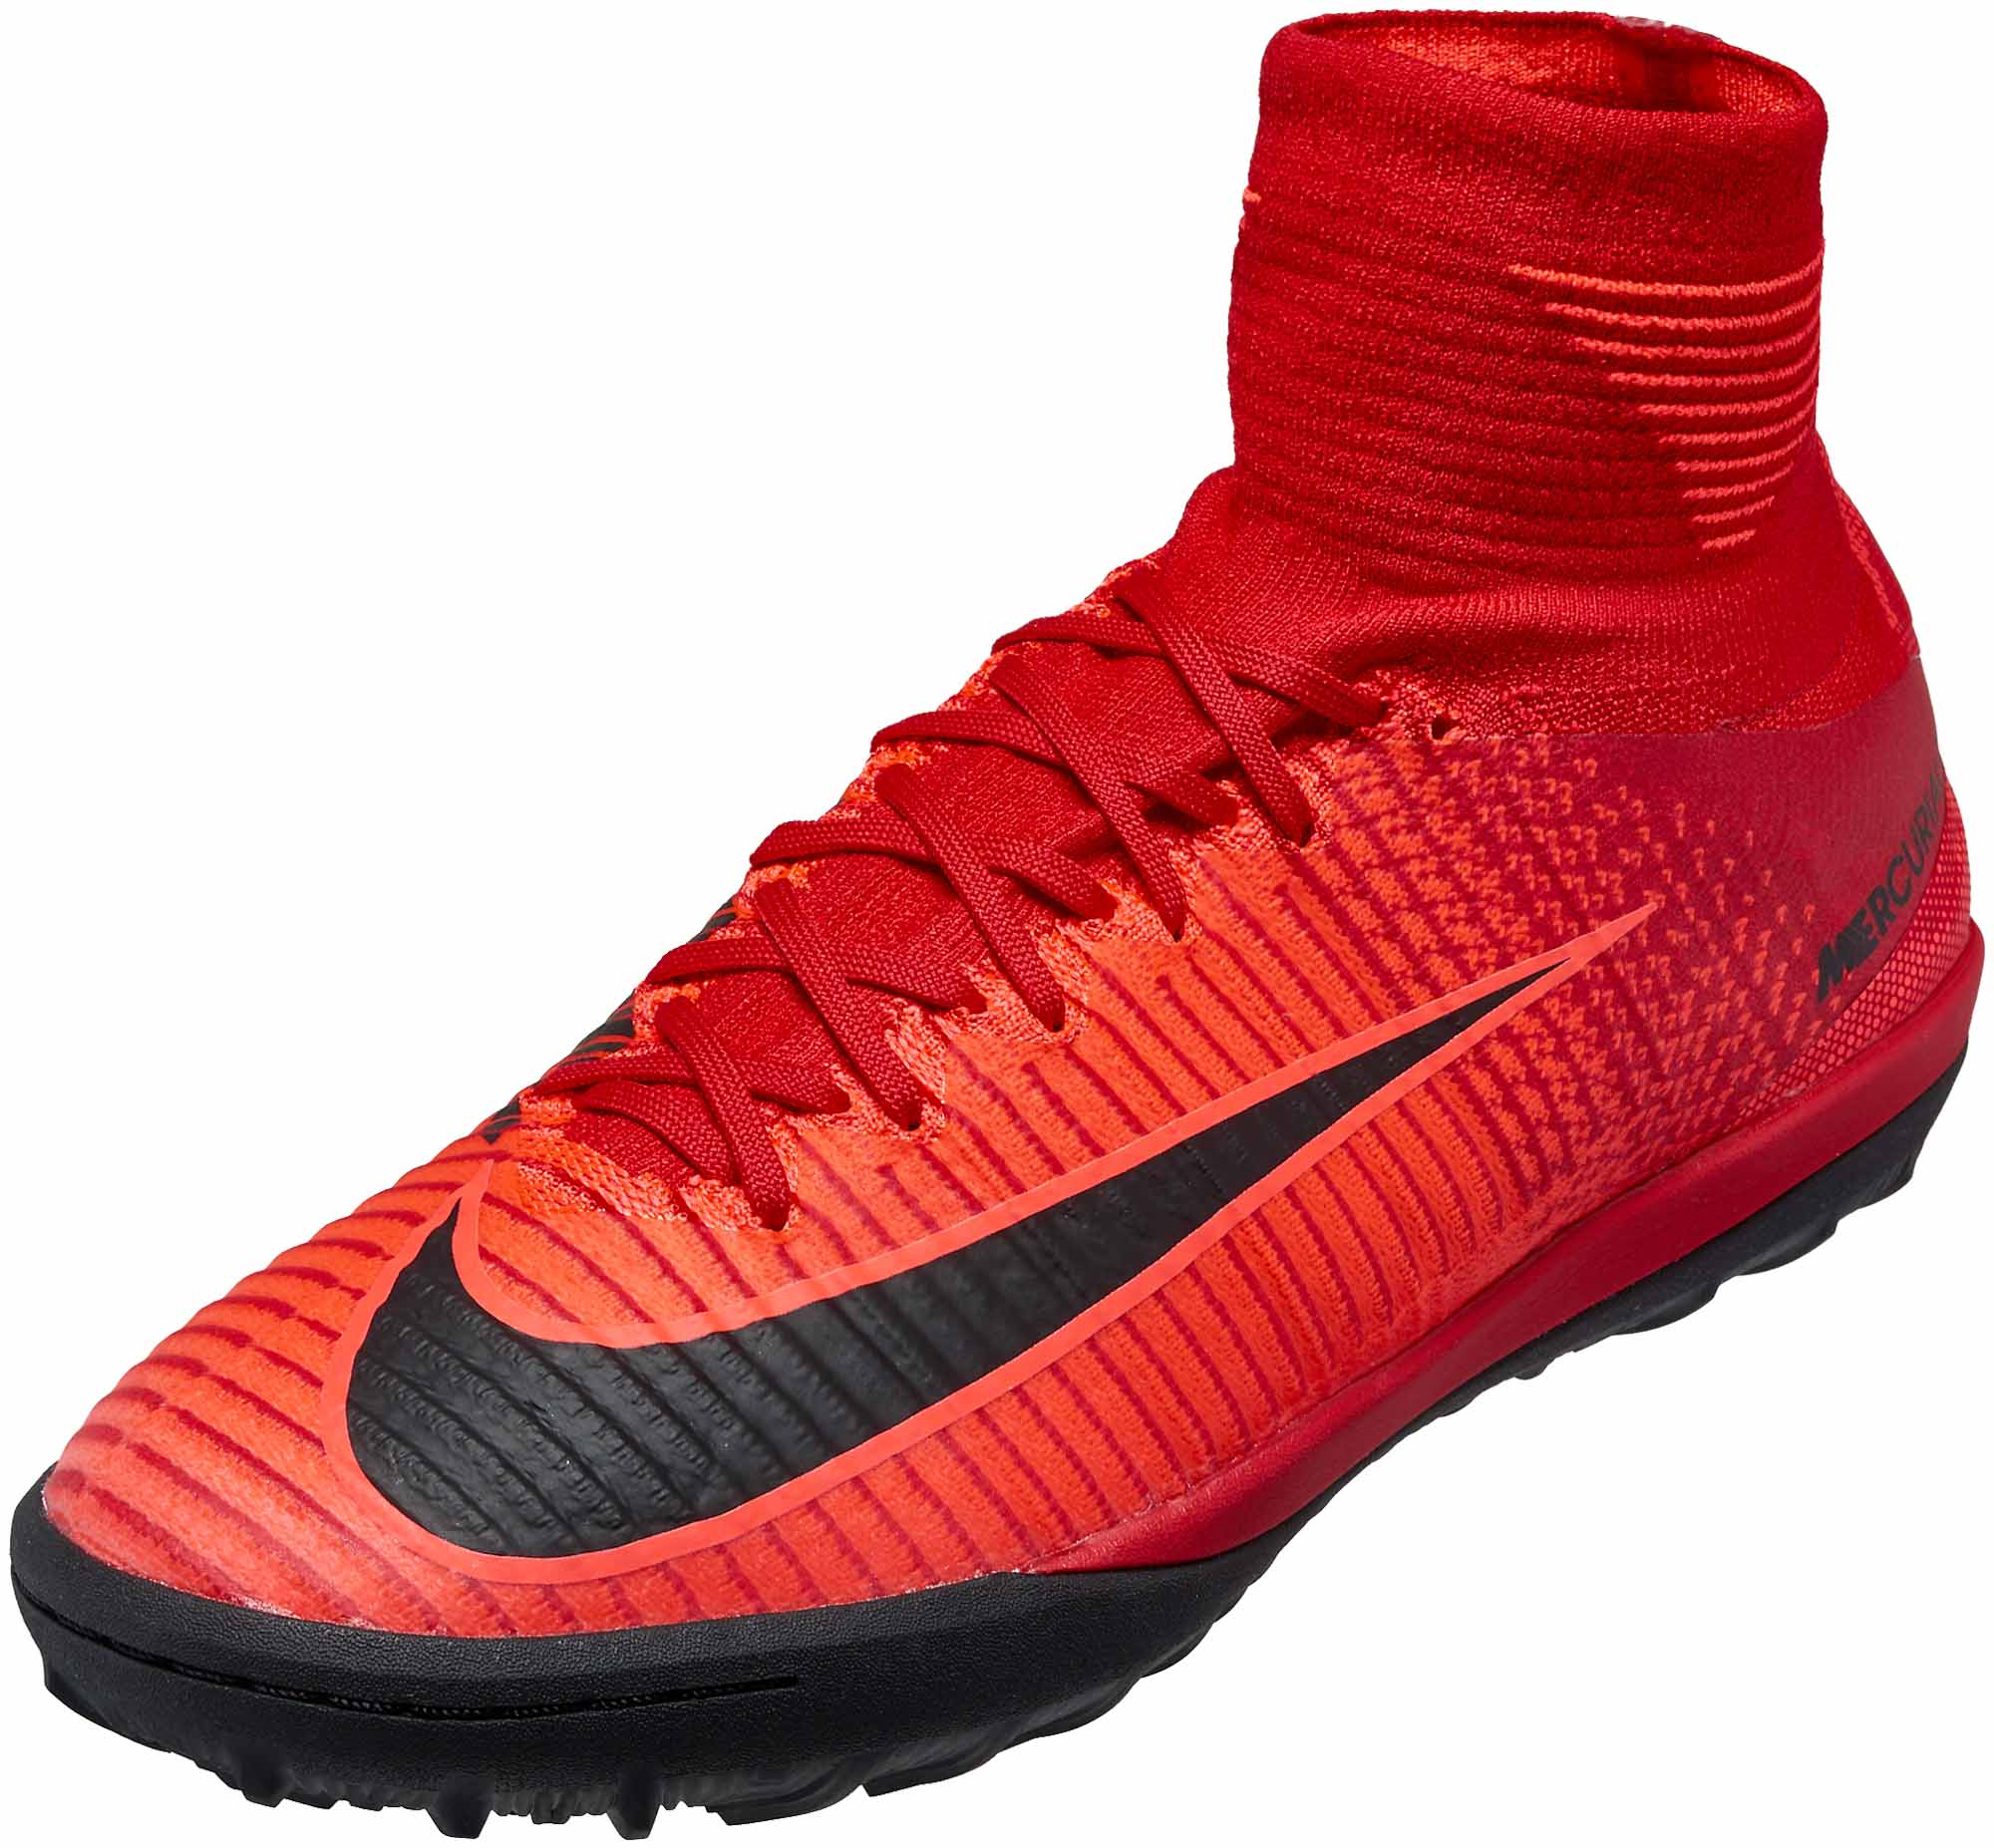 053c668c9ed Nike MercurialX Proximo II TF - University Red   Black - Soccer Master